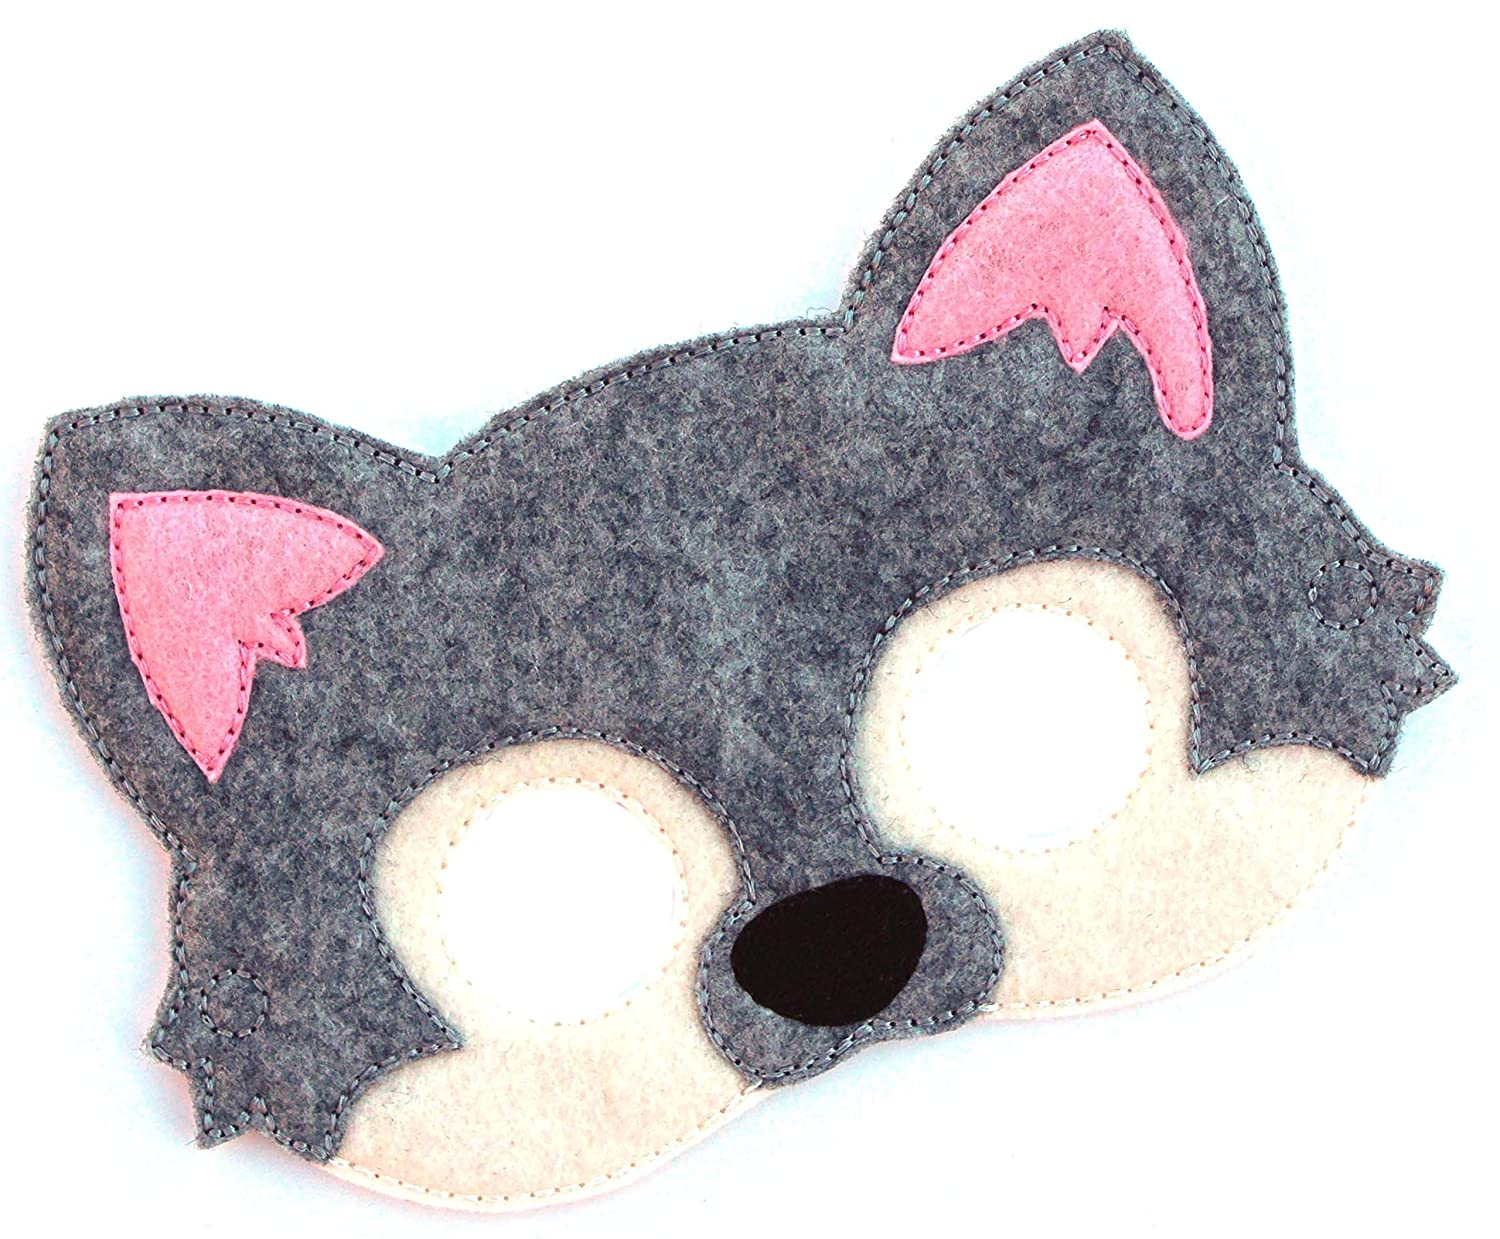 Halloween Costume Wolf Costume| Animal Face Mask Dress Up Kids Wolf Mask Felt Mask Kids Face Mask Costume Party Favors Pretend Play